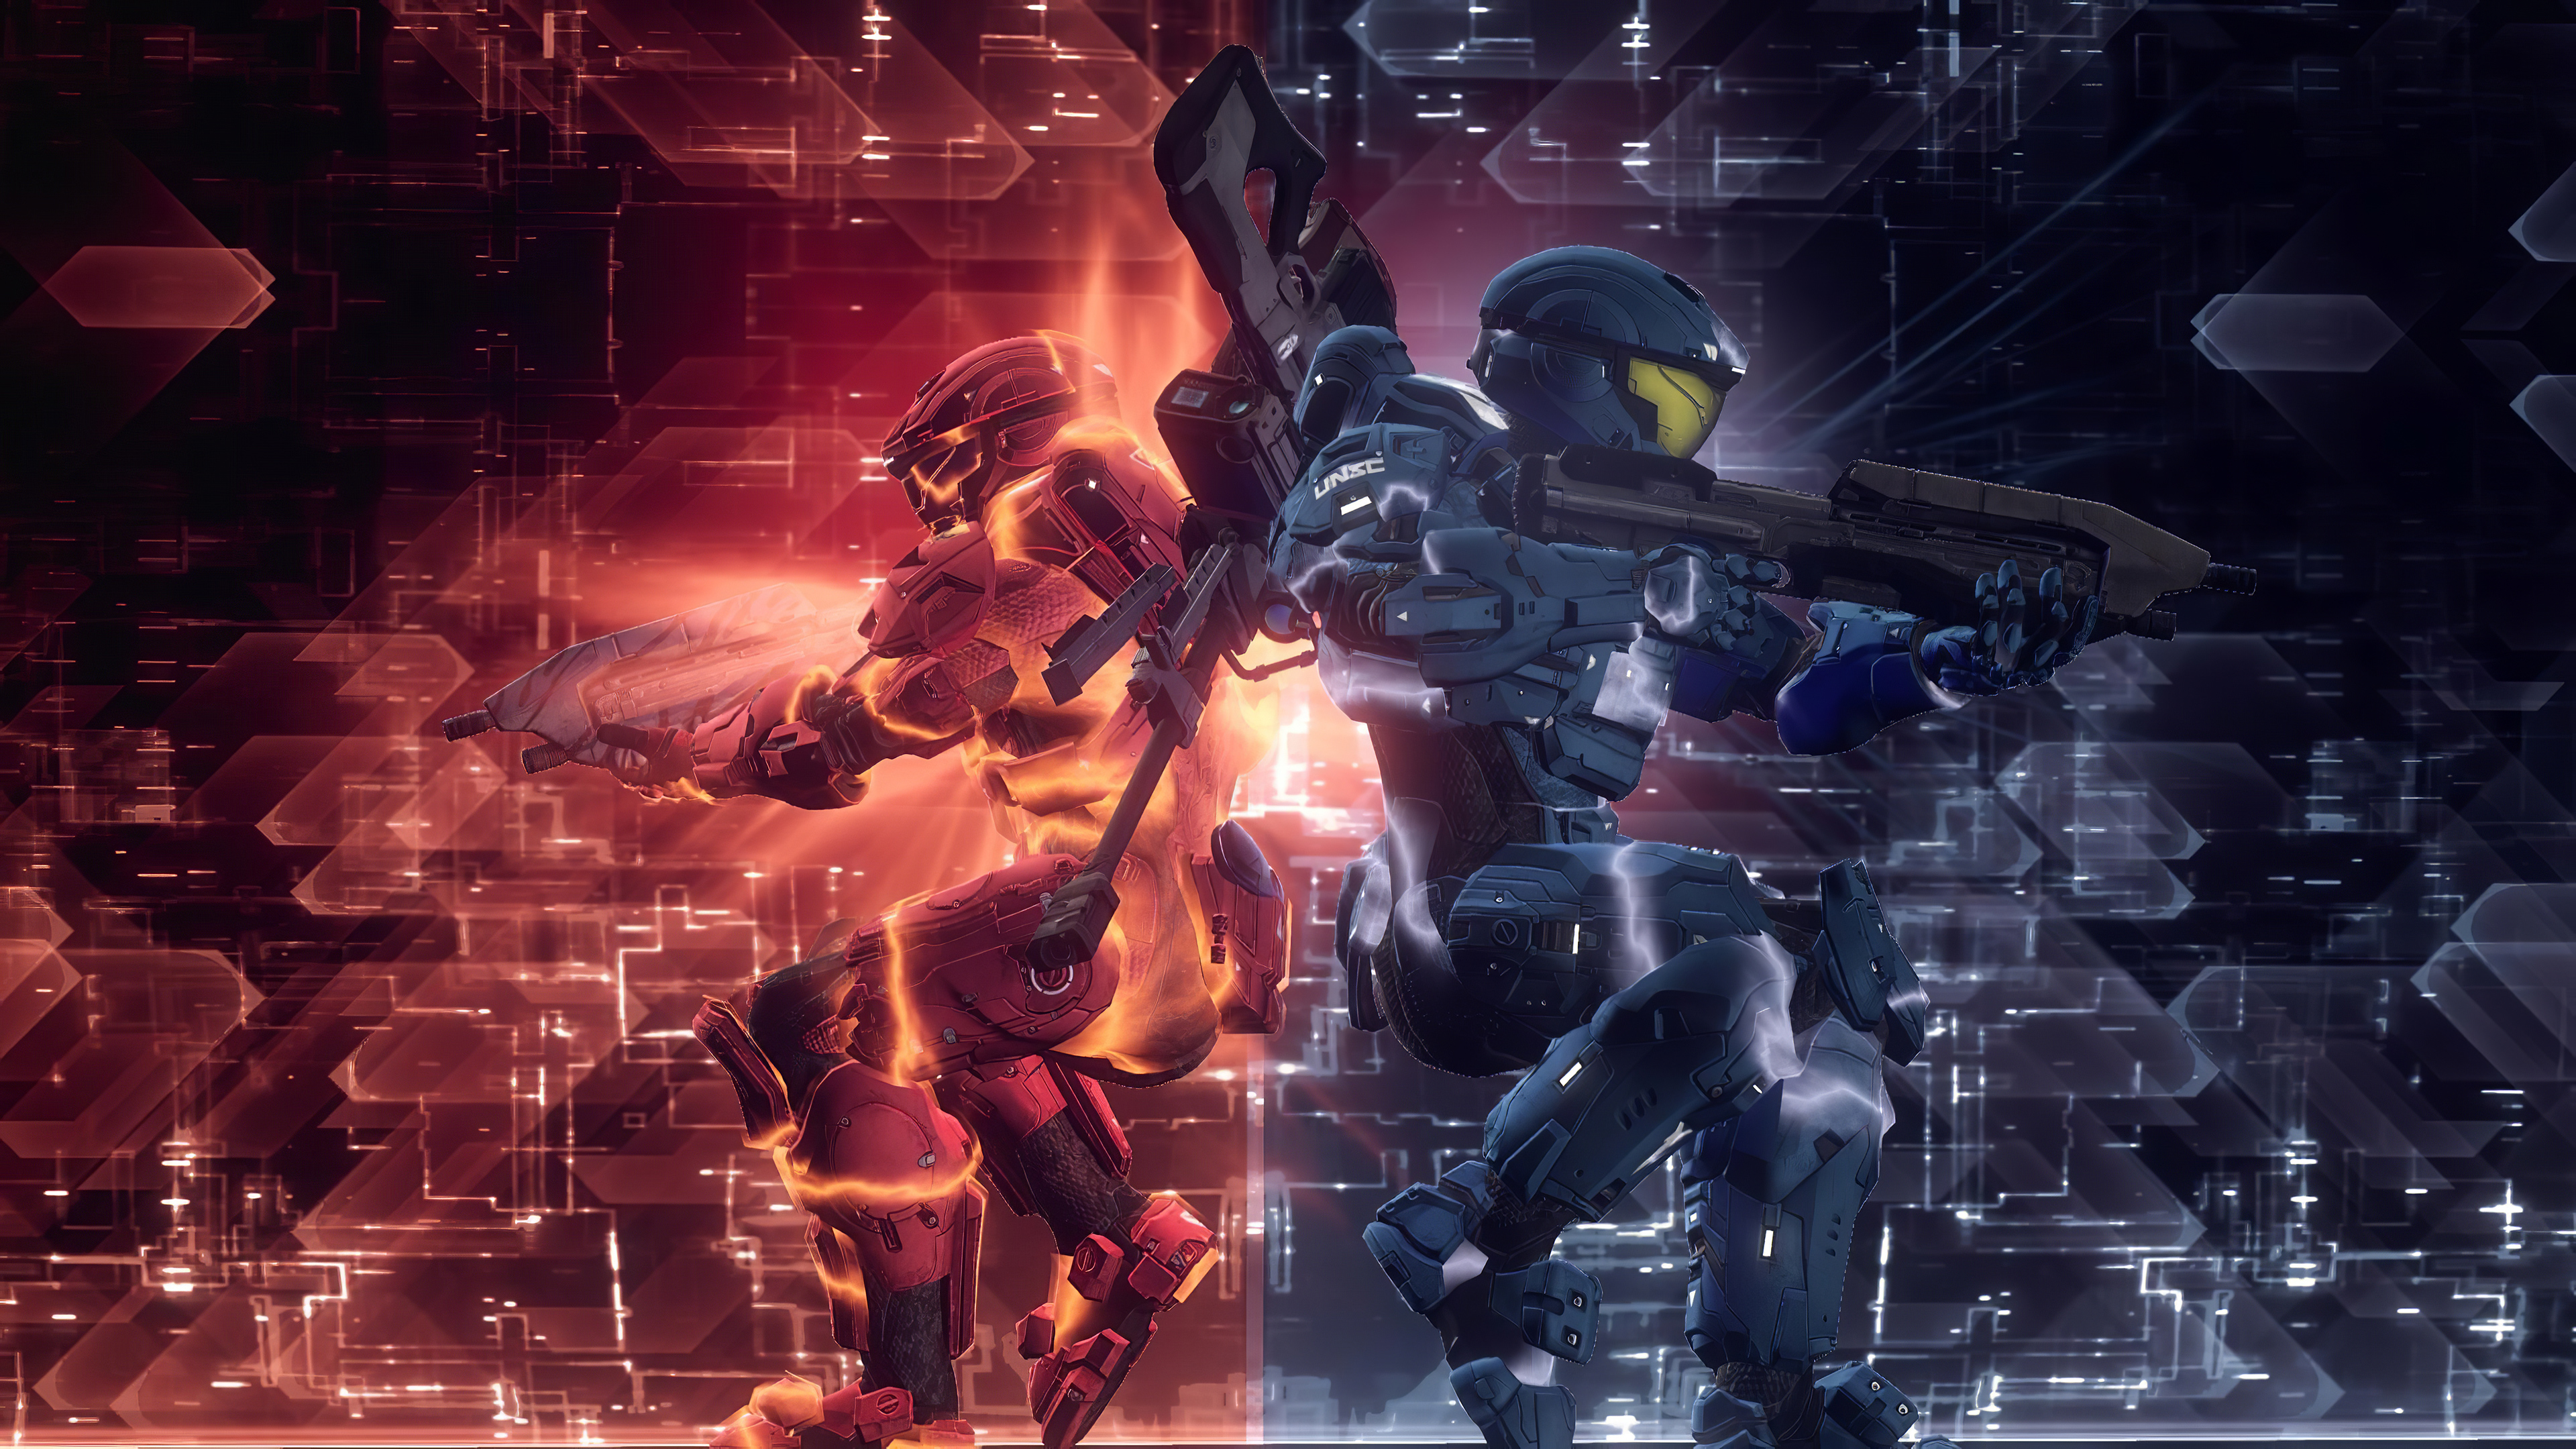 Though it is mild on purposeful decisions, this brief dip into the world is still filled with sturdy writing, interesting personalities, and also magnificent art. halo-video-game-4k-9o